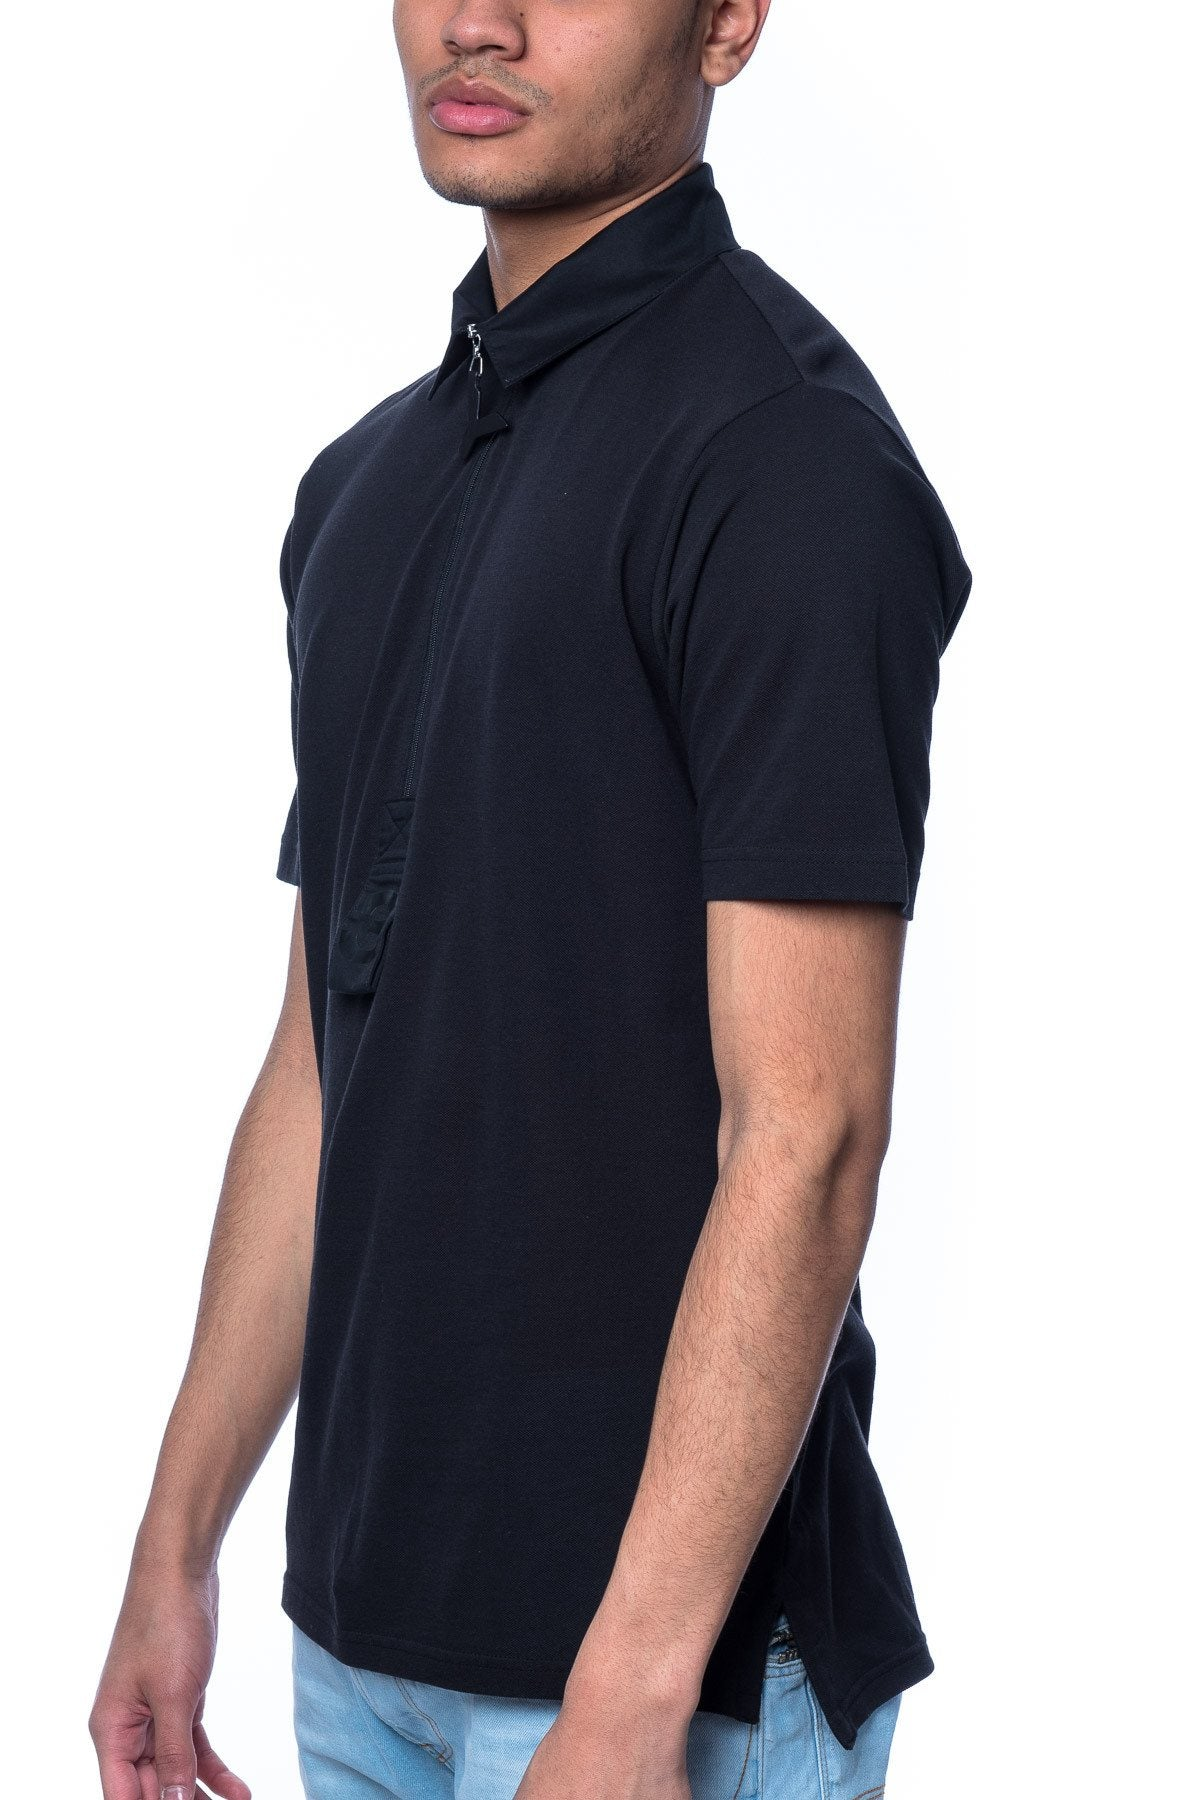 d1037fb3 Y 3 Polo Shirts – EDGE Engineering and Consulting Limited